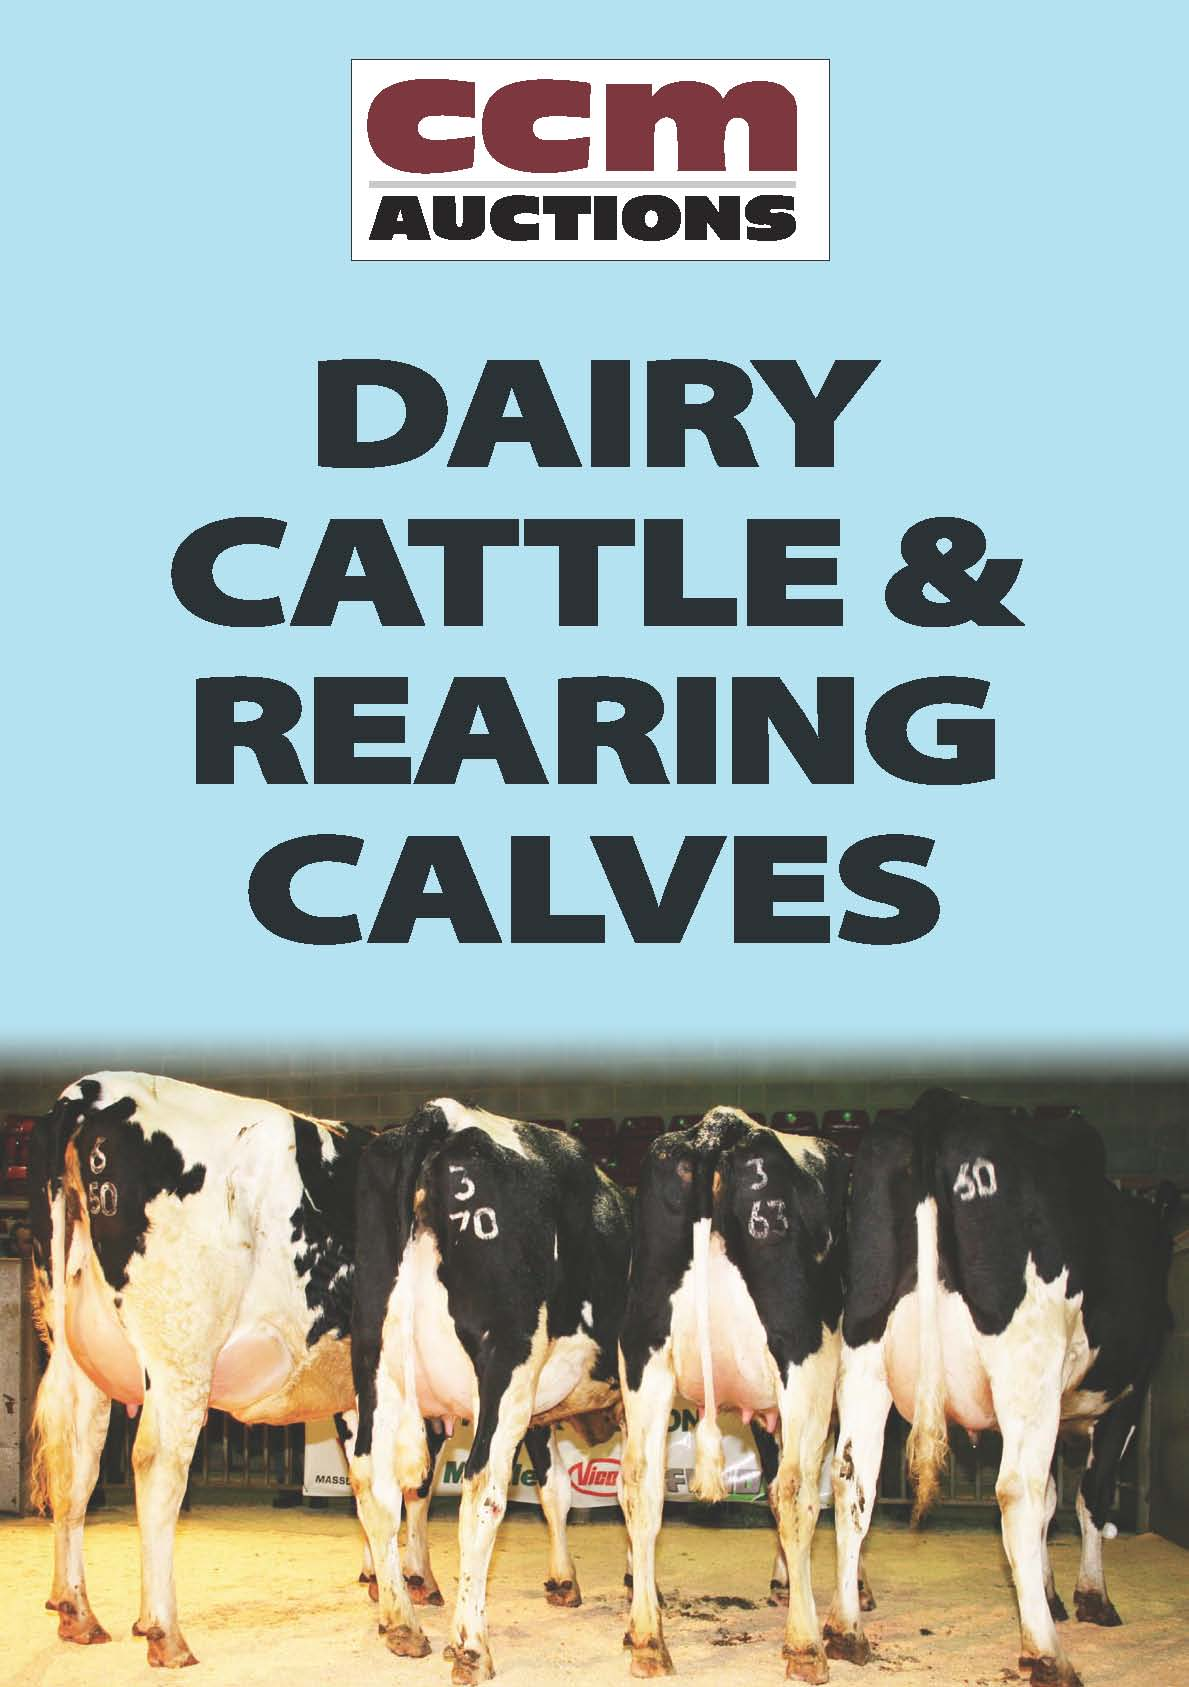 DAIRY & CALVES - MONDAY 9TH MARCH 2020